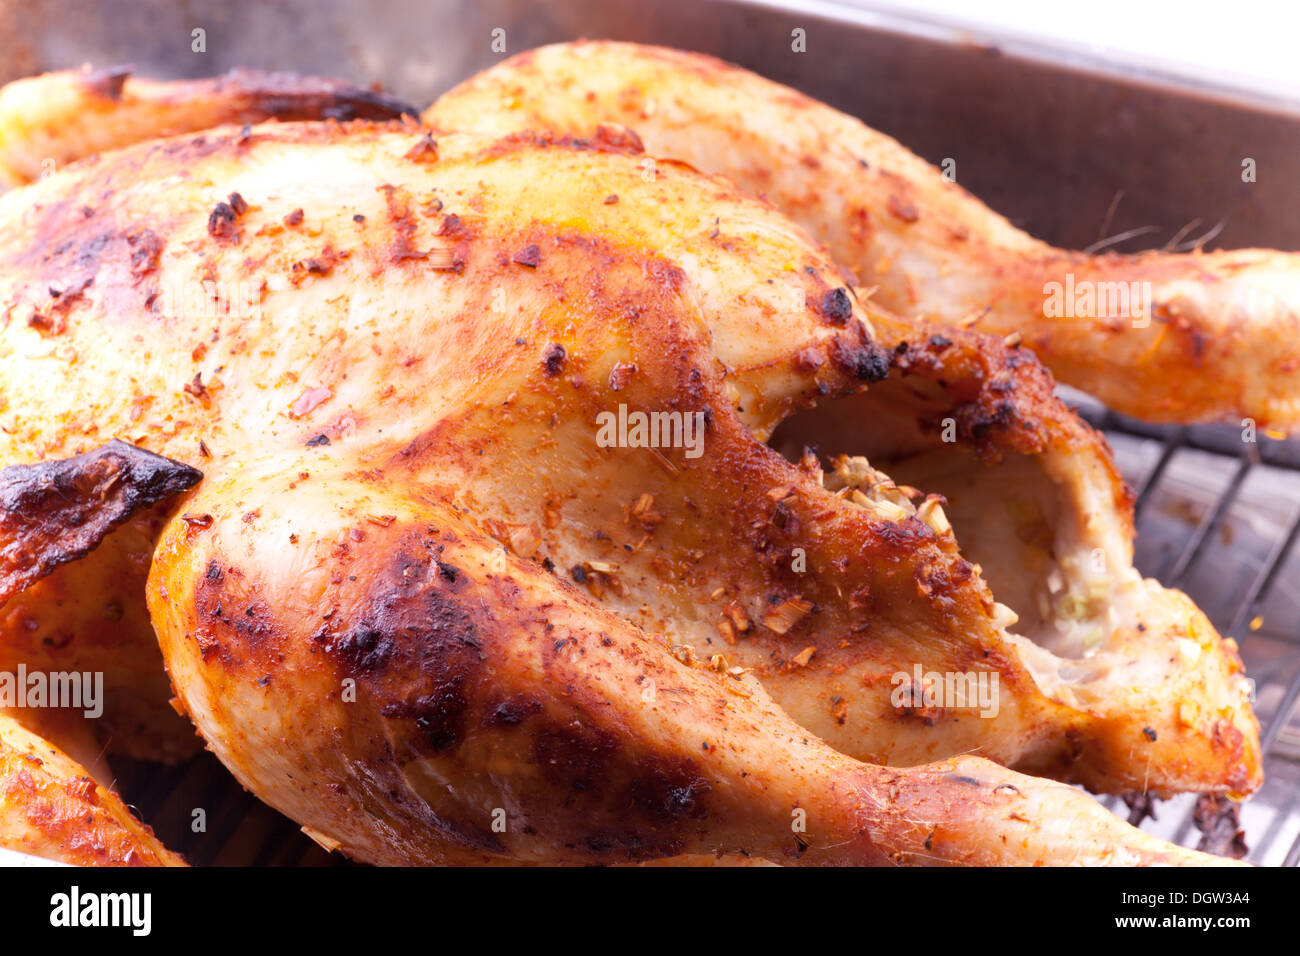 Roasted chicken ready to eat or serve - Stock Image